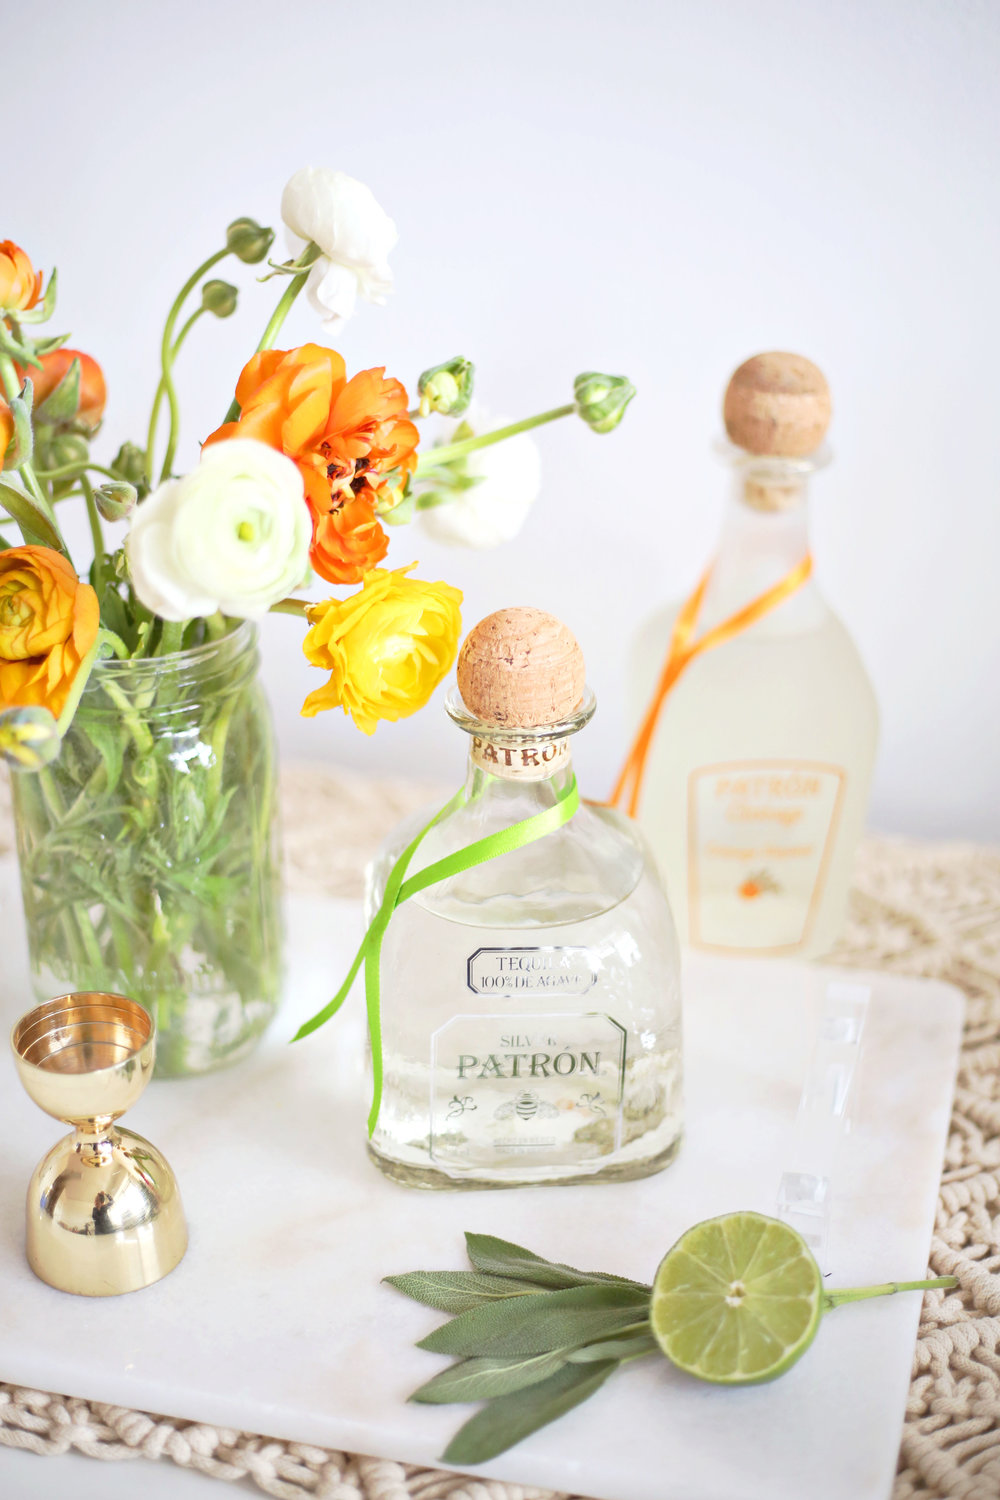 Margarita of the Year with Patrón